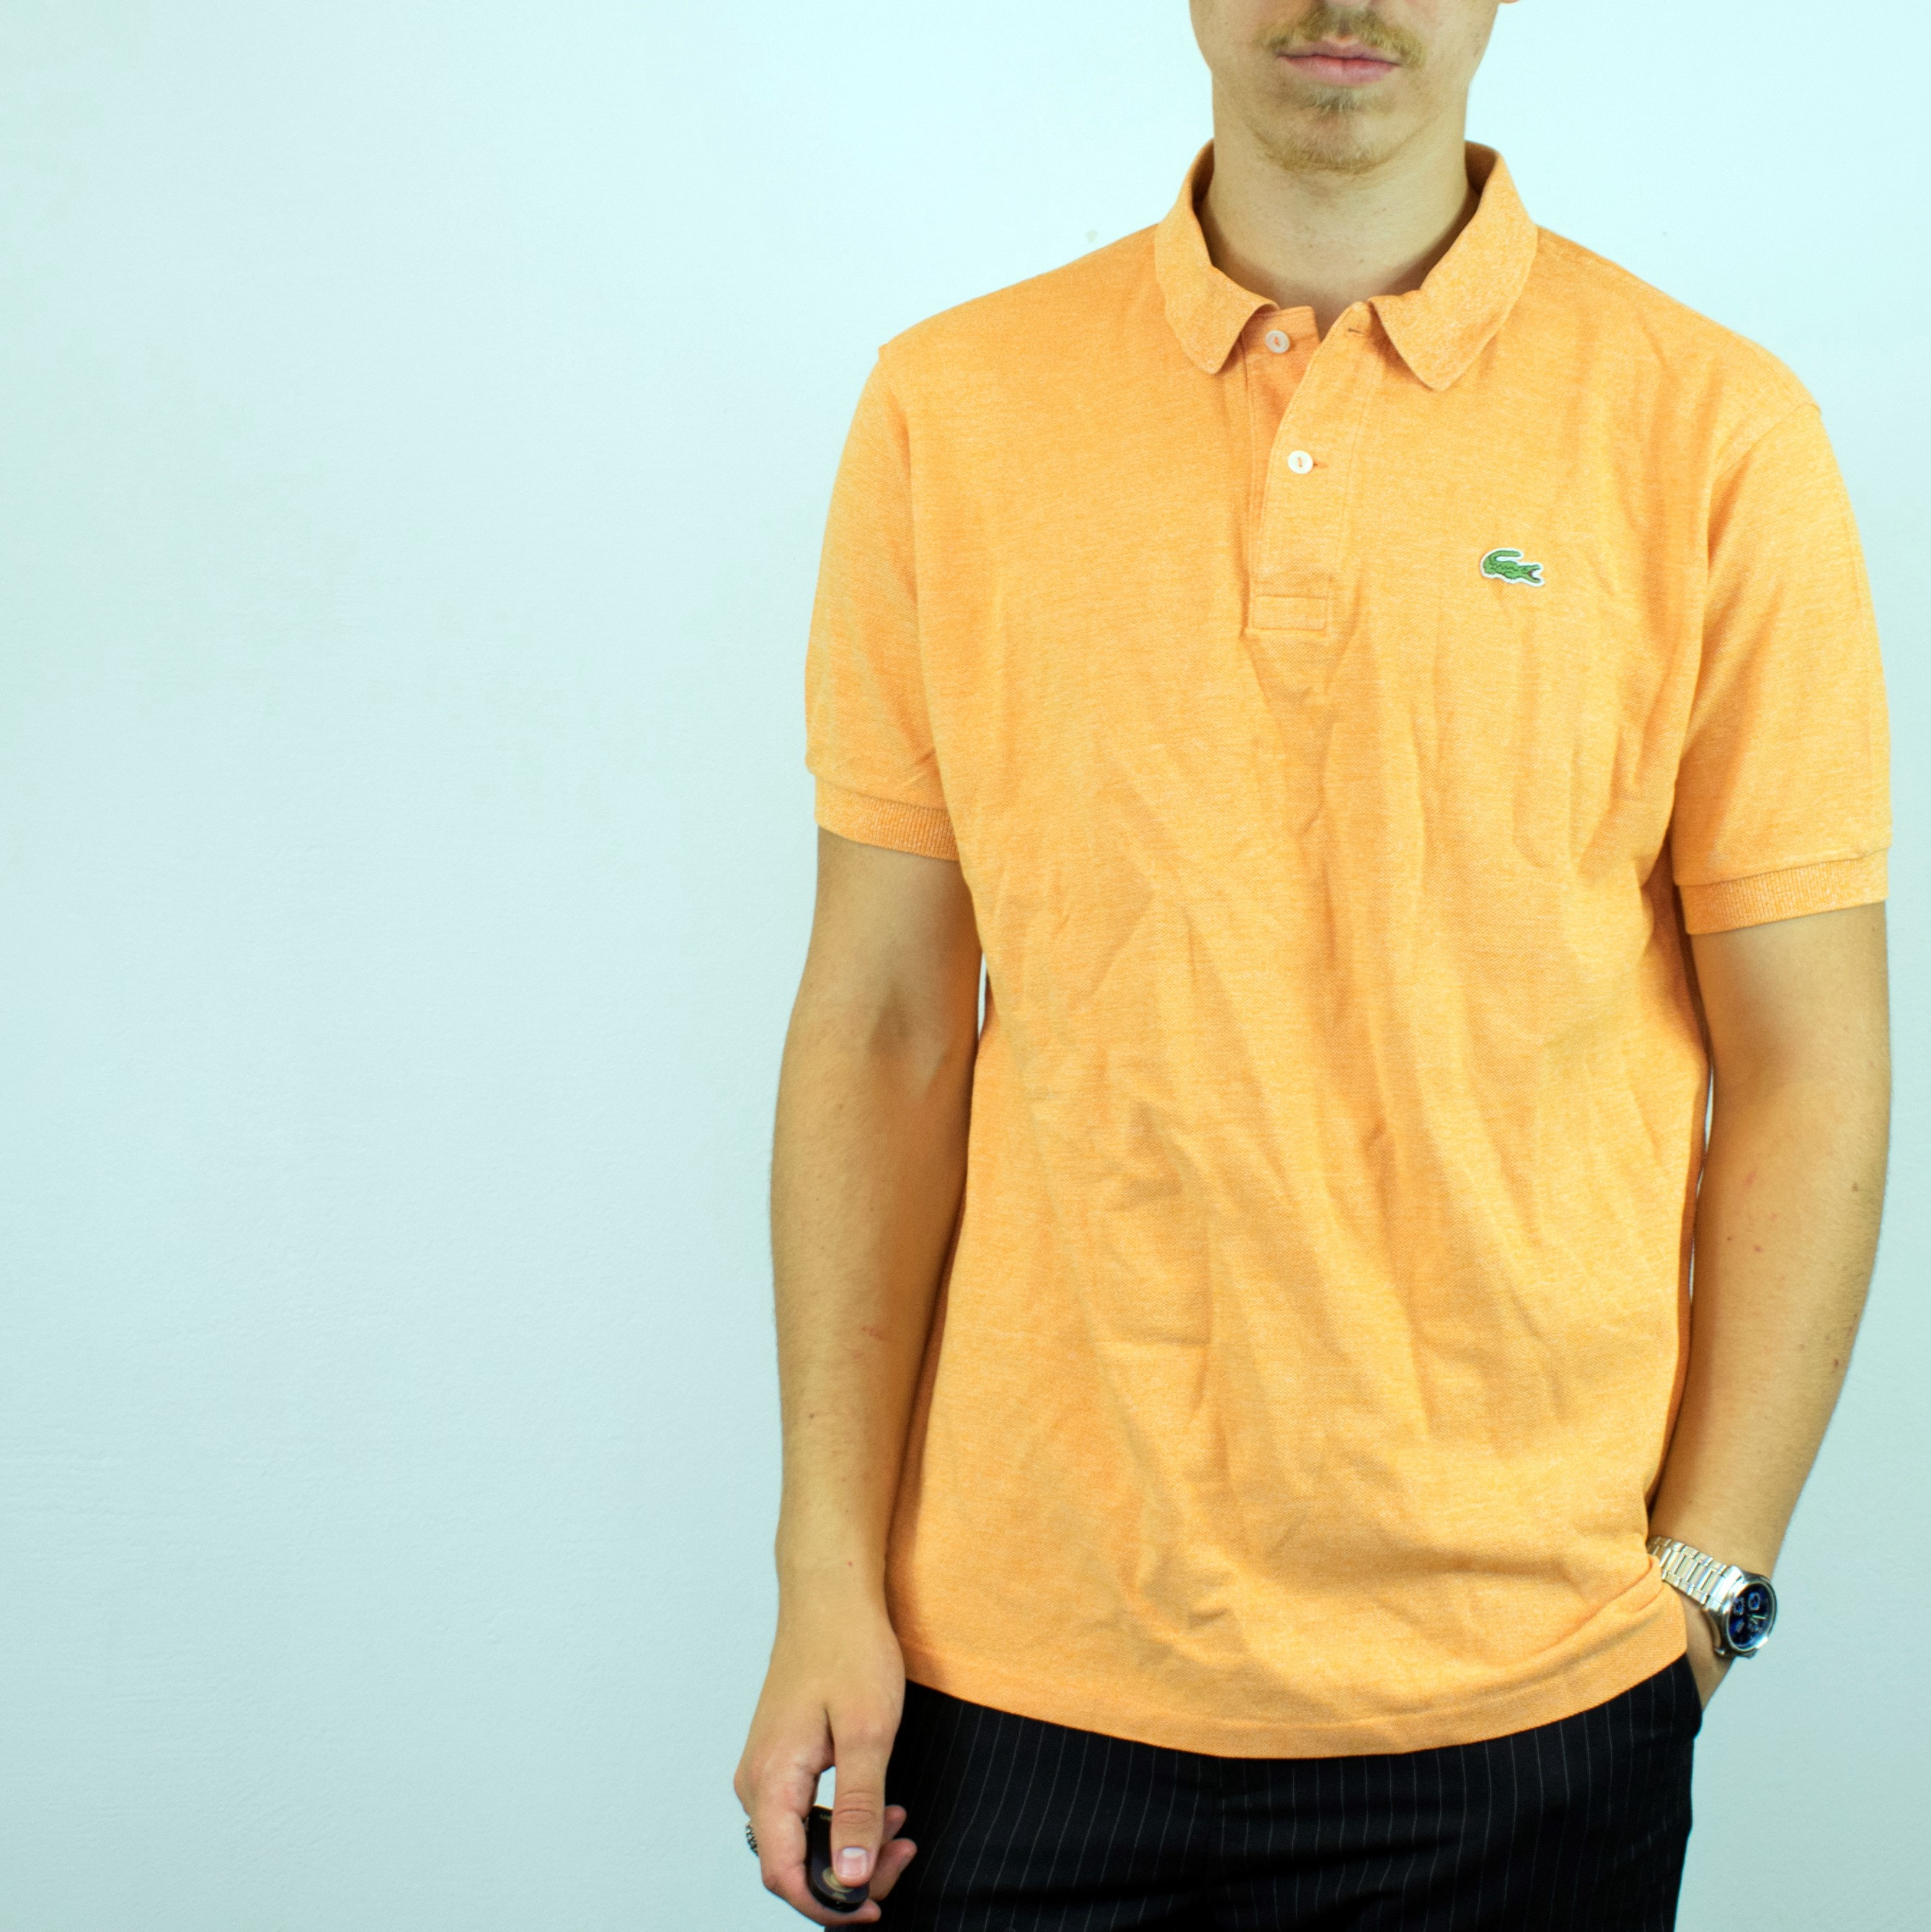 Vintage Lacoste polo shirt in orange has a small logo on the front size L